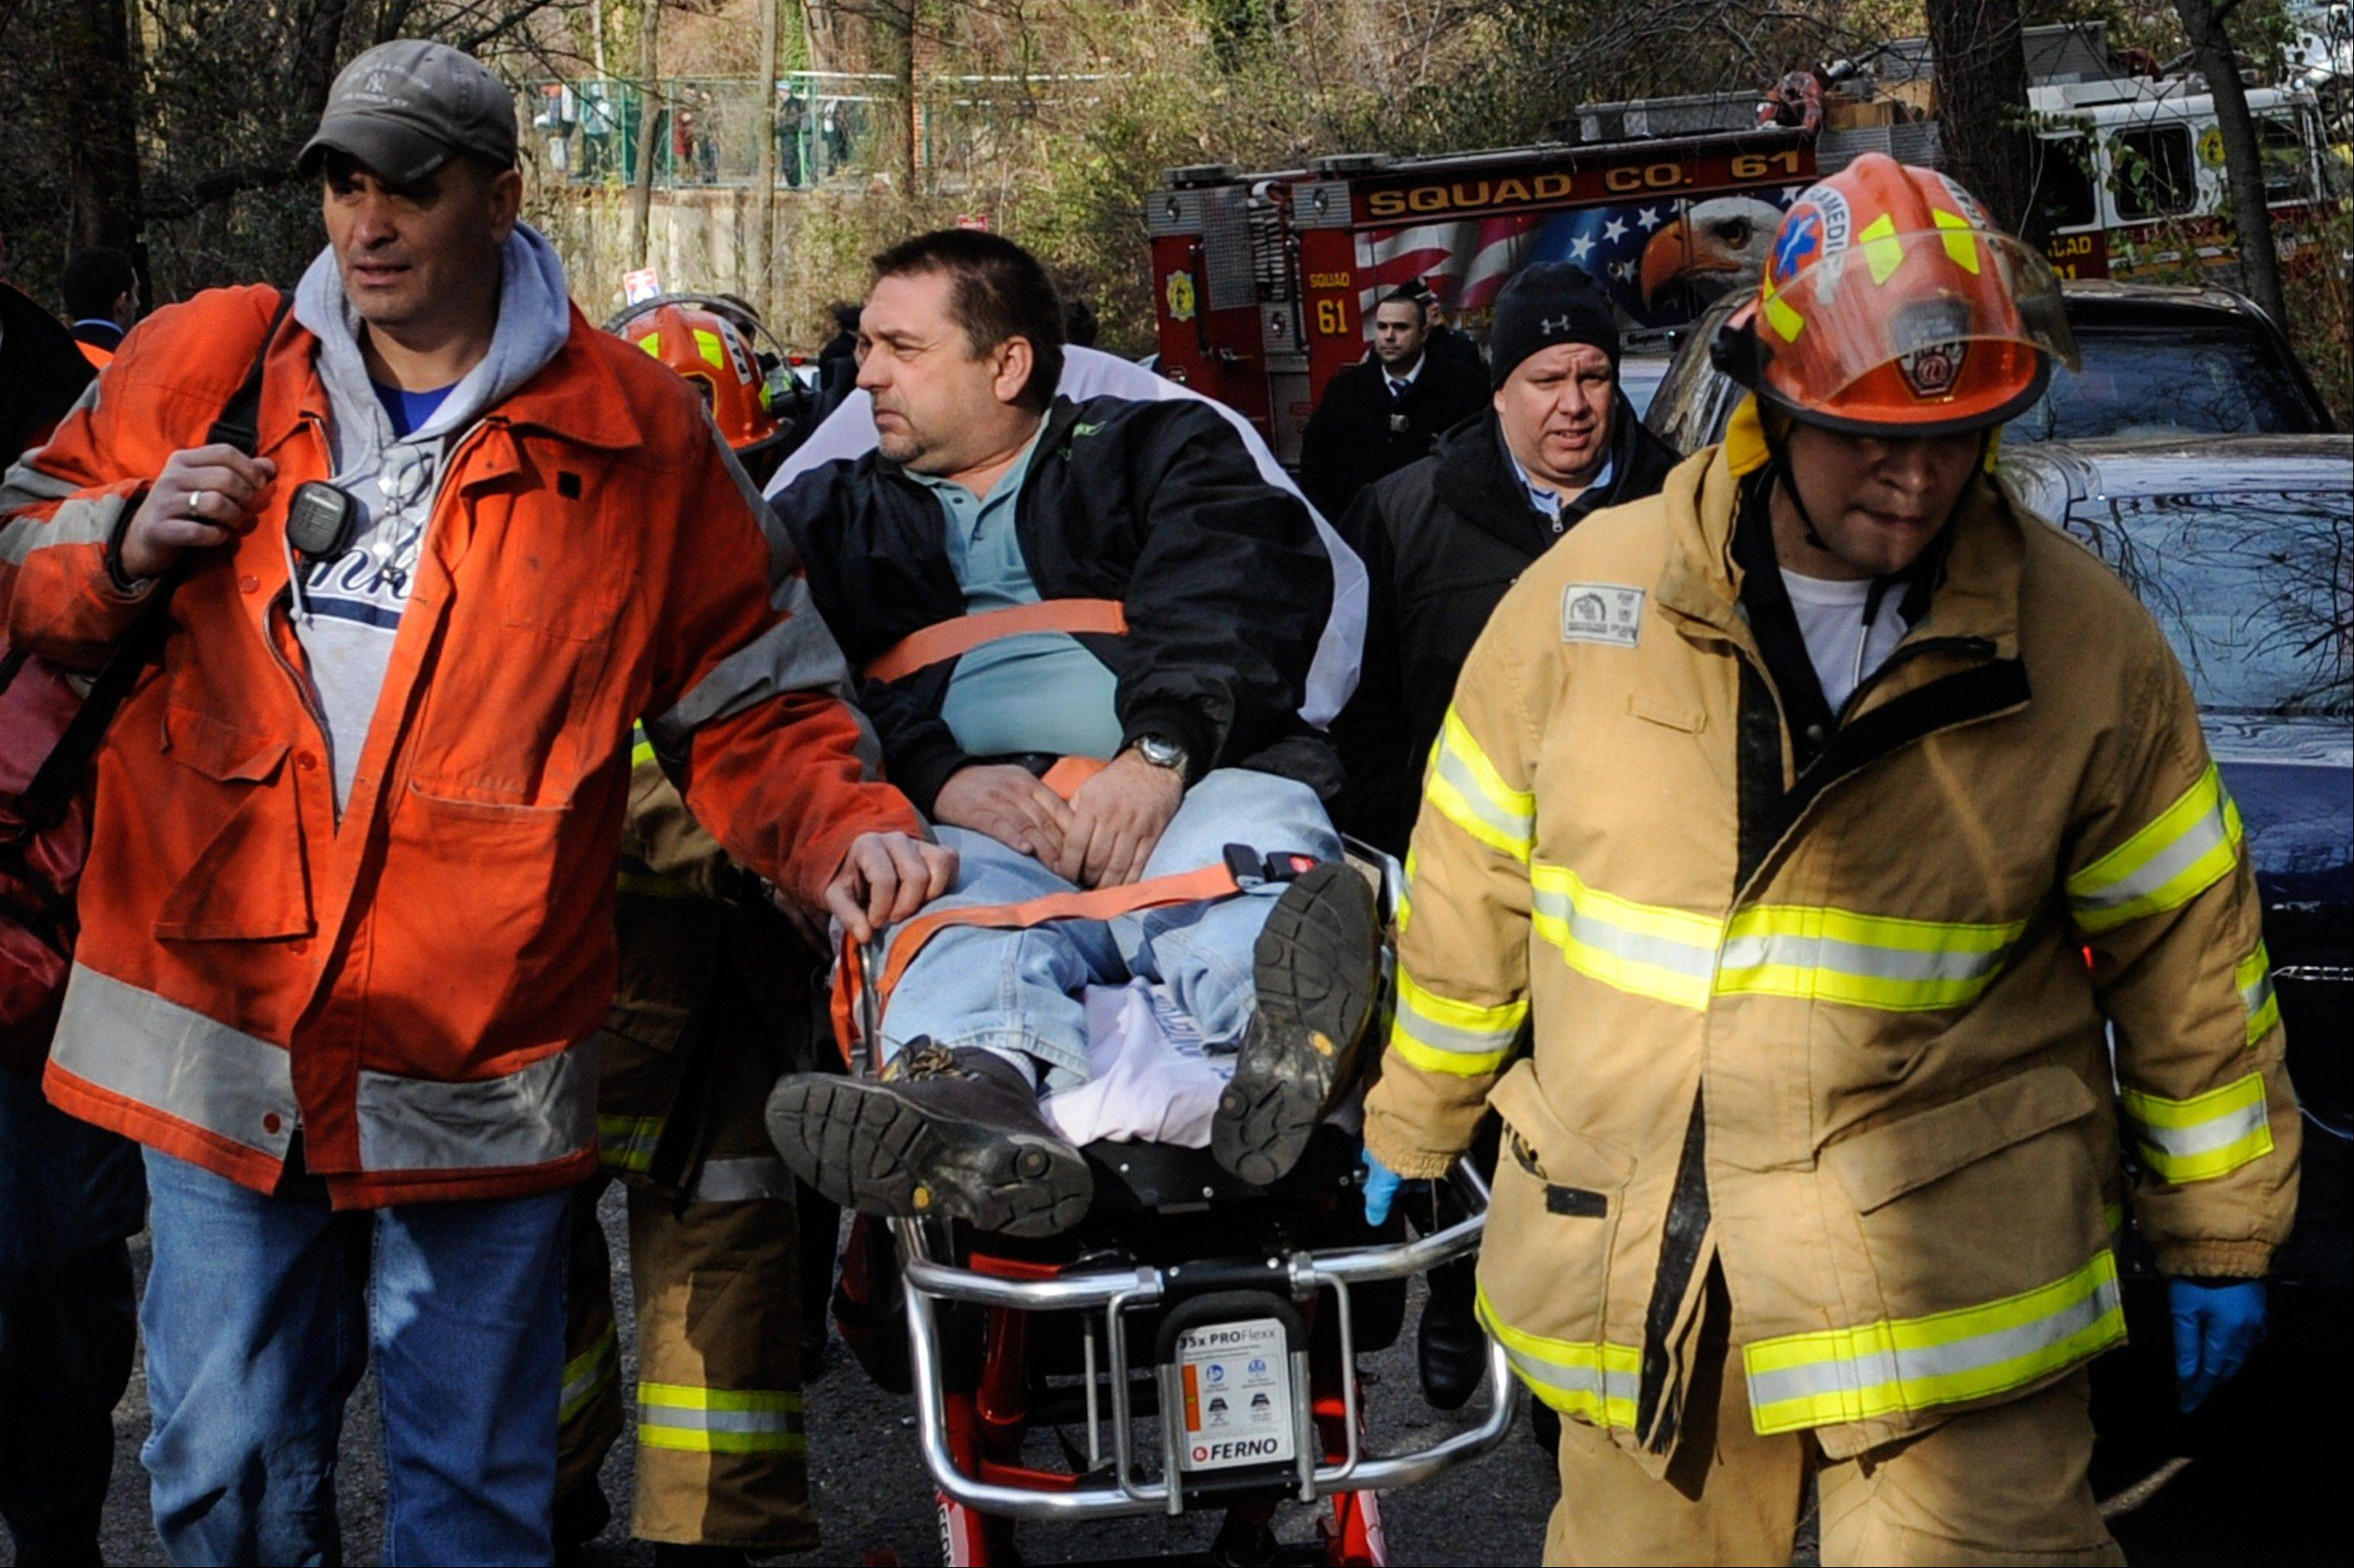 In this photo taken on Sunday, Metro North Railroad engineer William Rockefeller is wheeled on a stretcher away from the area where the commuter train he was operating derailed in the Bronx borough of New York. The National Transportation Safety Board reported Monday that the train Rockefeller was driving was going 82 mph around a 30-mph curve when it derailed killing four people and injuring more than 60.